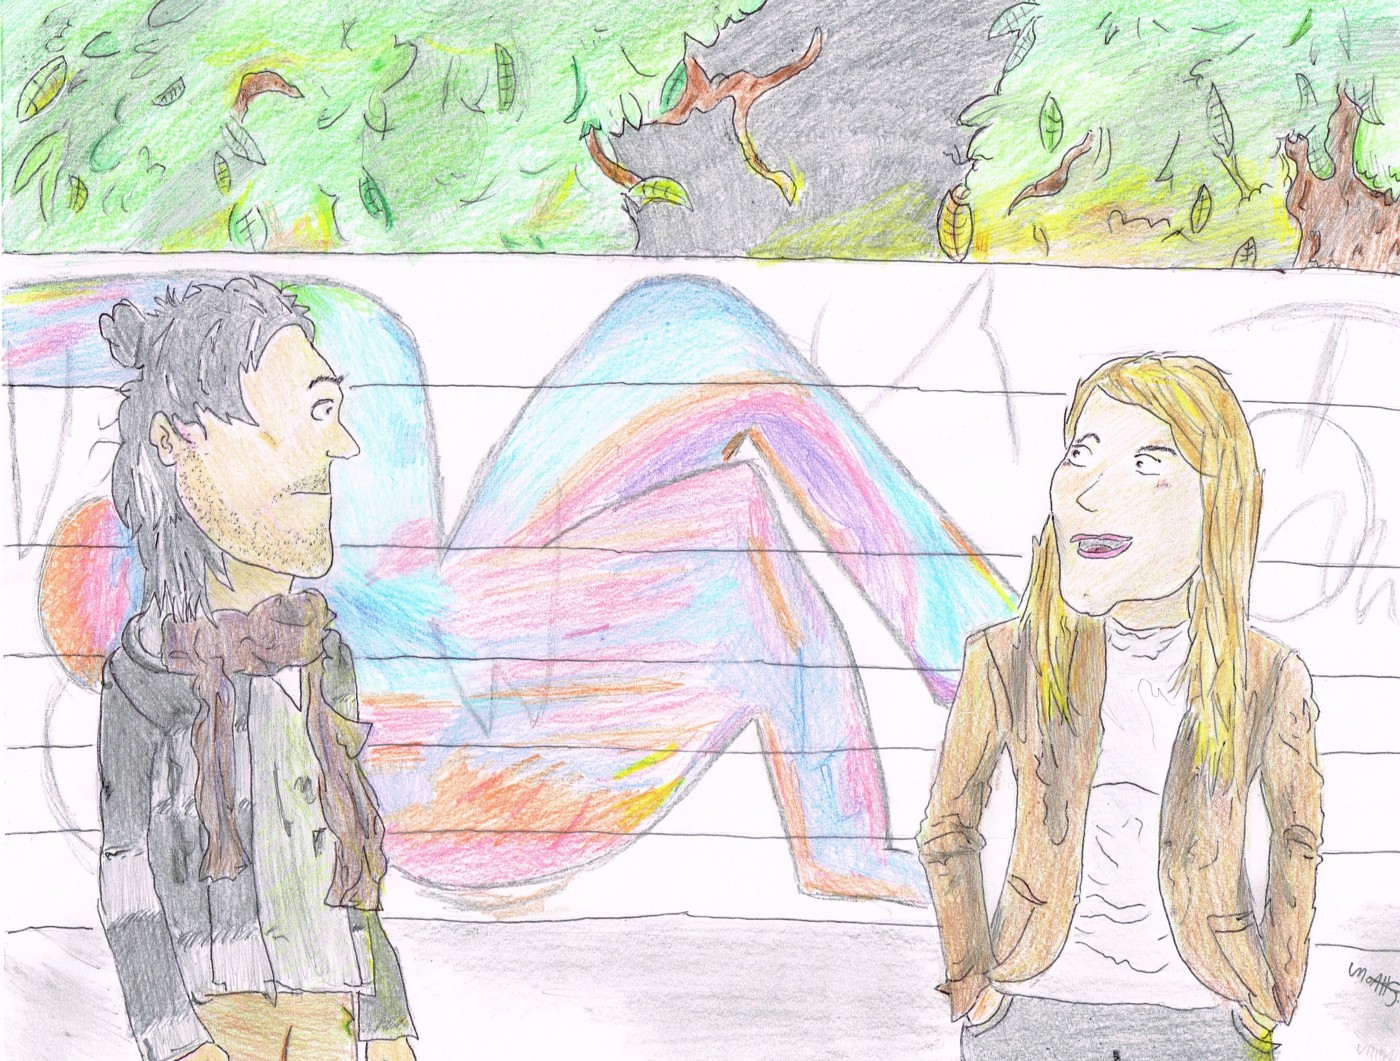 """Jack Huston (left) and Brit Marling (right) talking at night in front of street art and trees in a scene from """"Posthumous."""""""